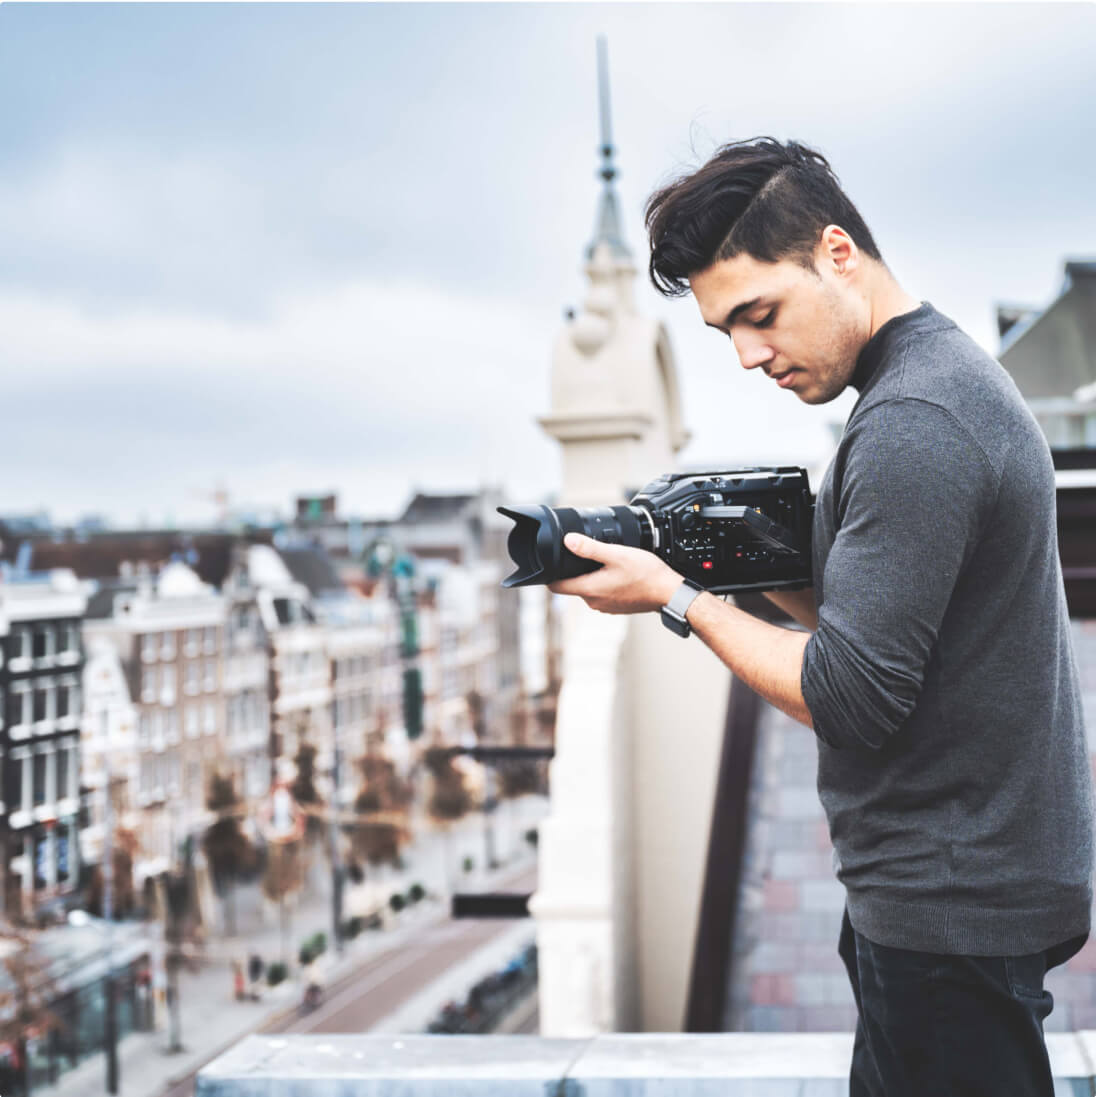 Video and animation in action on a rooftop in Amsterdam